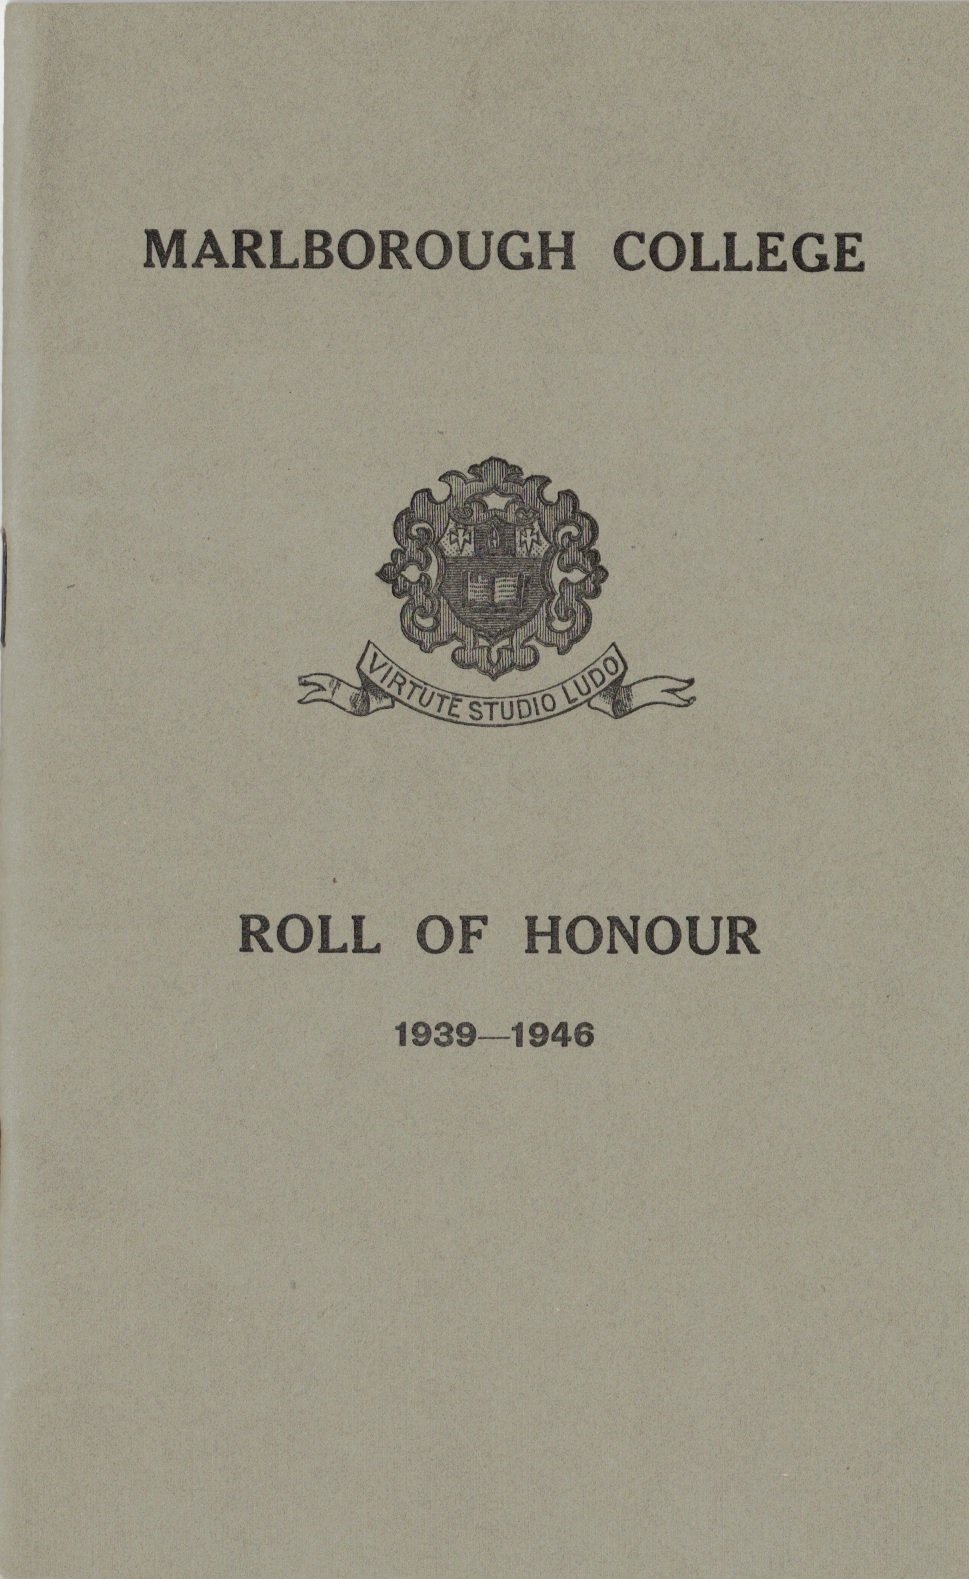 Roll of Honour, Marlborough College, 1947 including Arnhem casualties (collection P. Reinders)